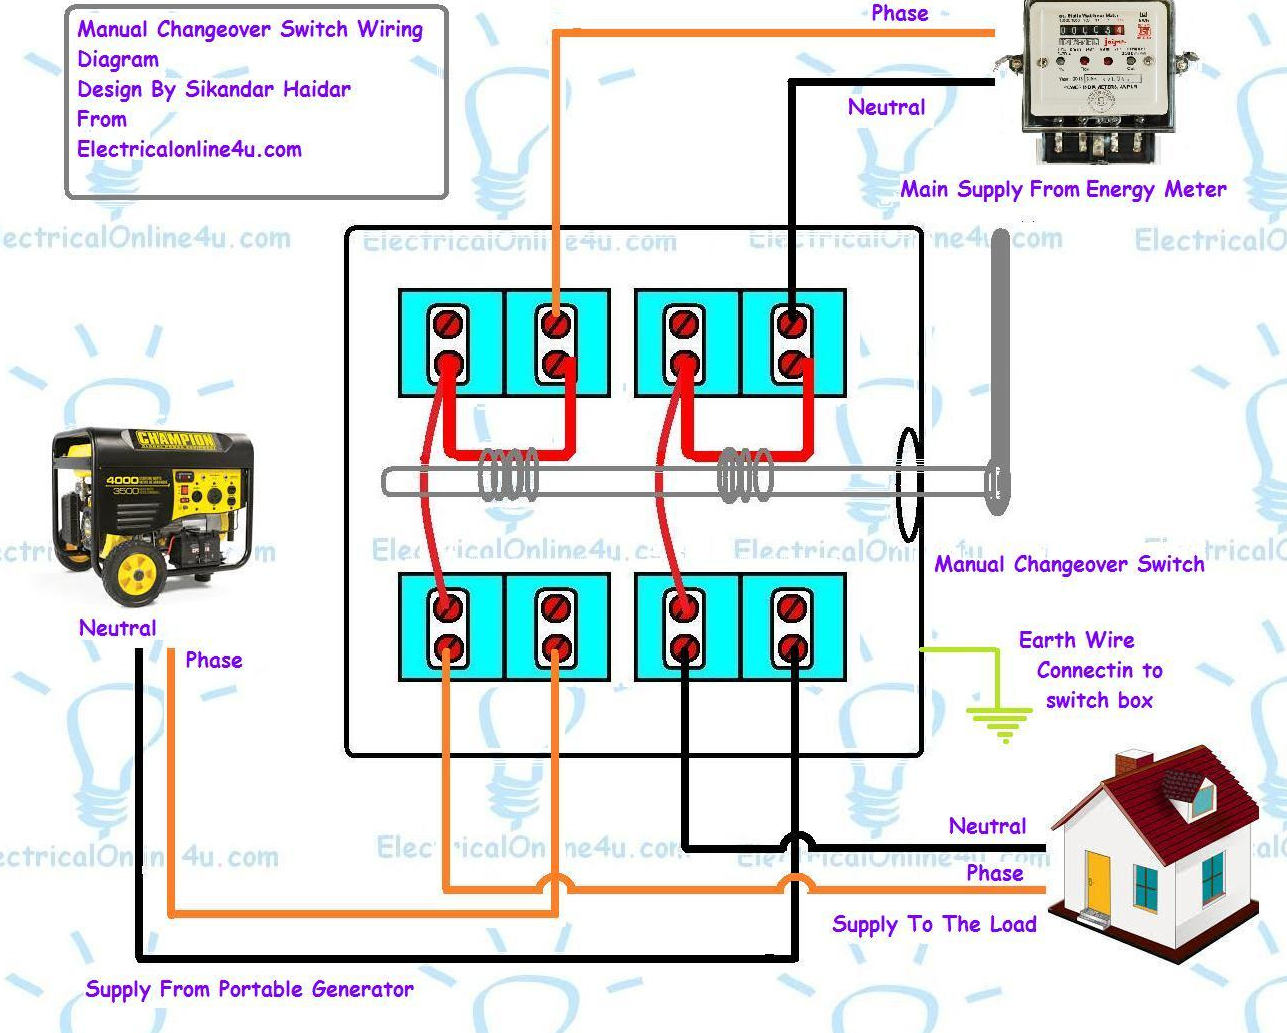 Manual changeover switch wiring diagram for portable generator | m on transfer switch service, transfer switch connections, transfer switch system, transfer switch cable, transfer switch circuit, automatic transfer switch diagram, transfer switch transformer, transfer switch generator, circuit diagram, transfer switch heater, home transfer switch diagram, transfer switches for home use, whole house transfer switch diagram, transfer switch manual, transfer switch schematic, transfer switch installation, auto on off switch diagram, ignition switch diagram, transfer switches for portable generators, transfer switch cover,